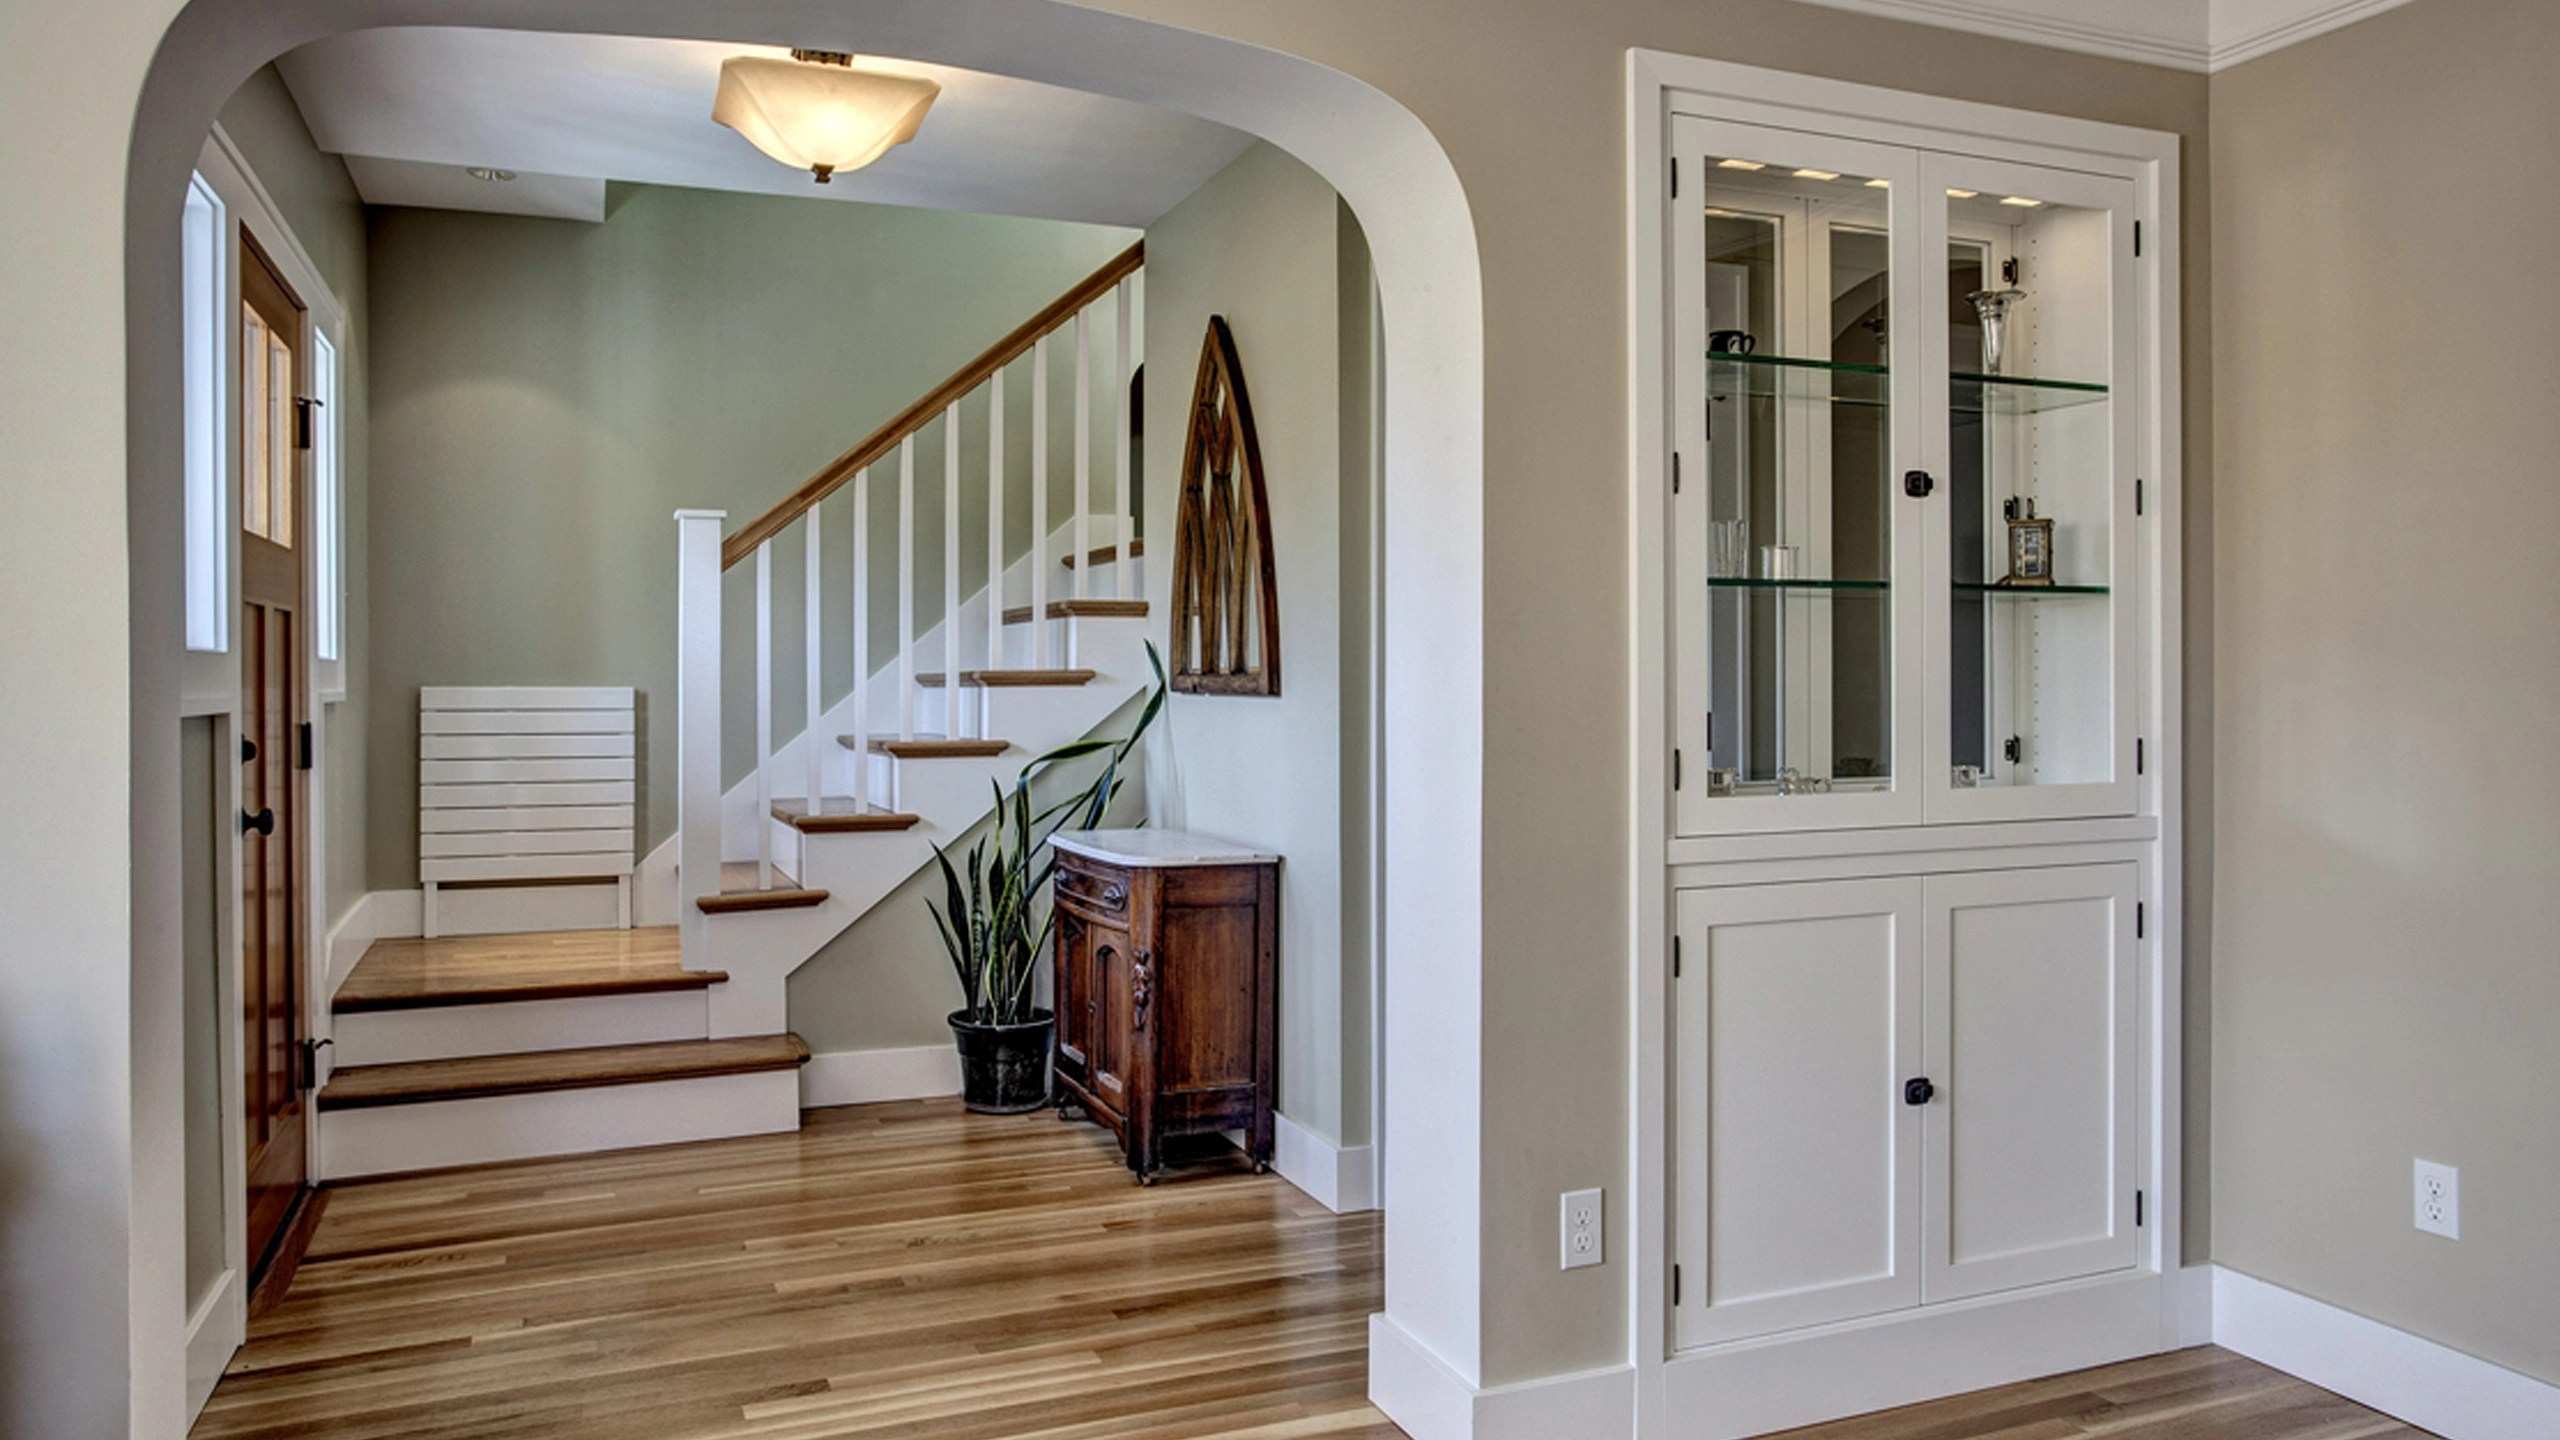 Staircases In Homes The Ups And Downs Of Staircase Design Board Vellum